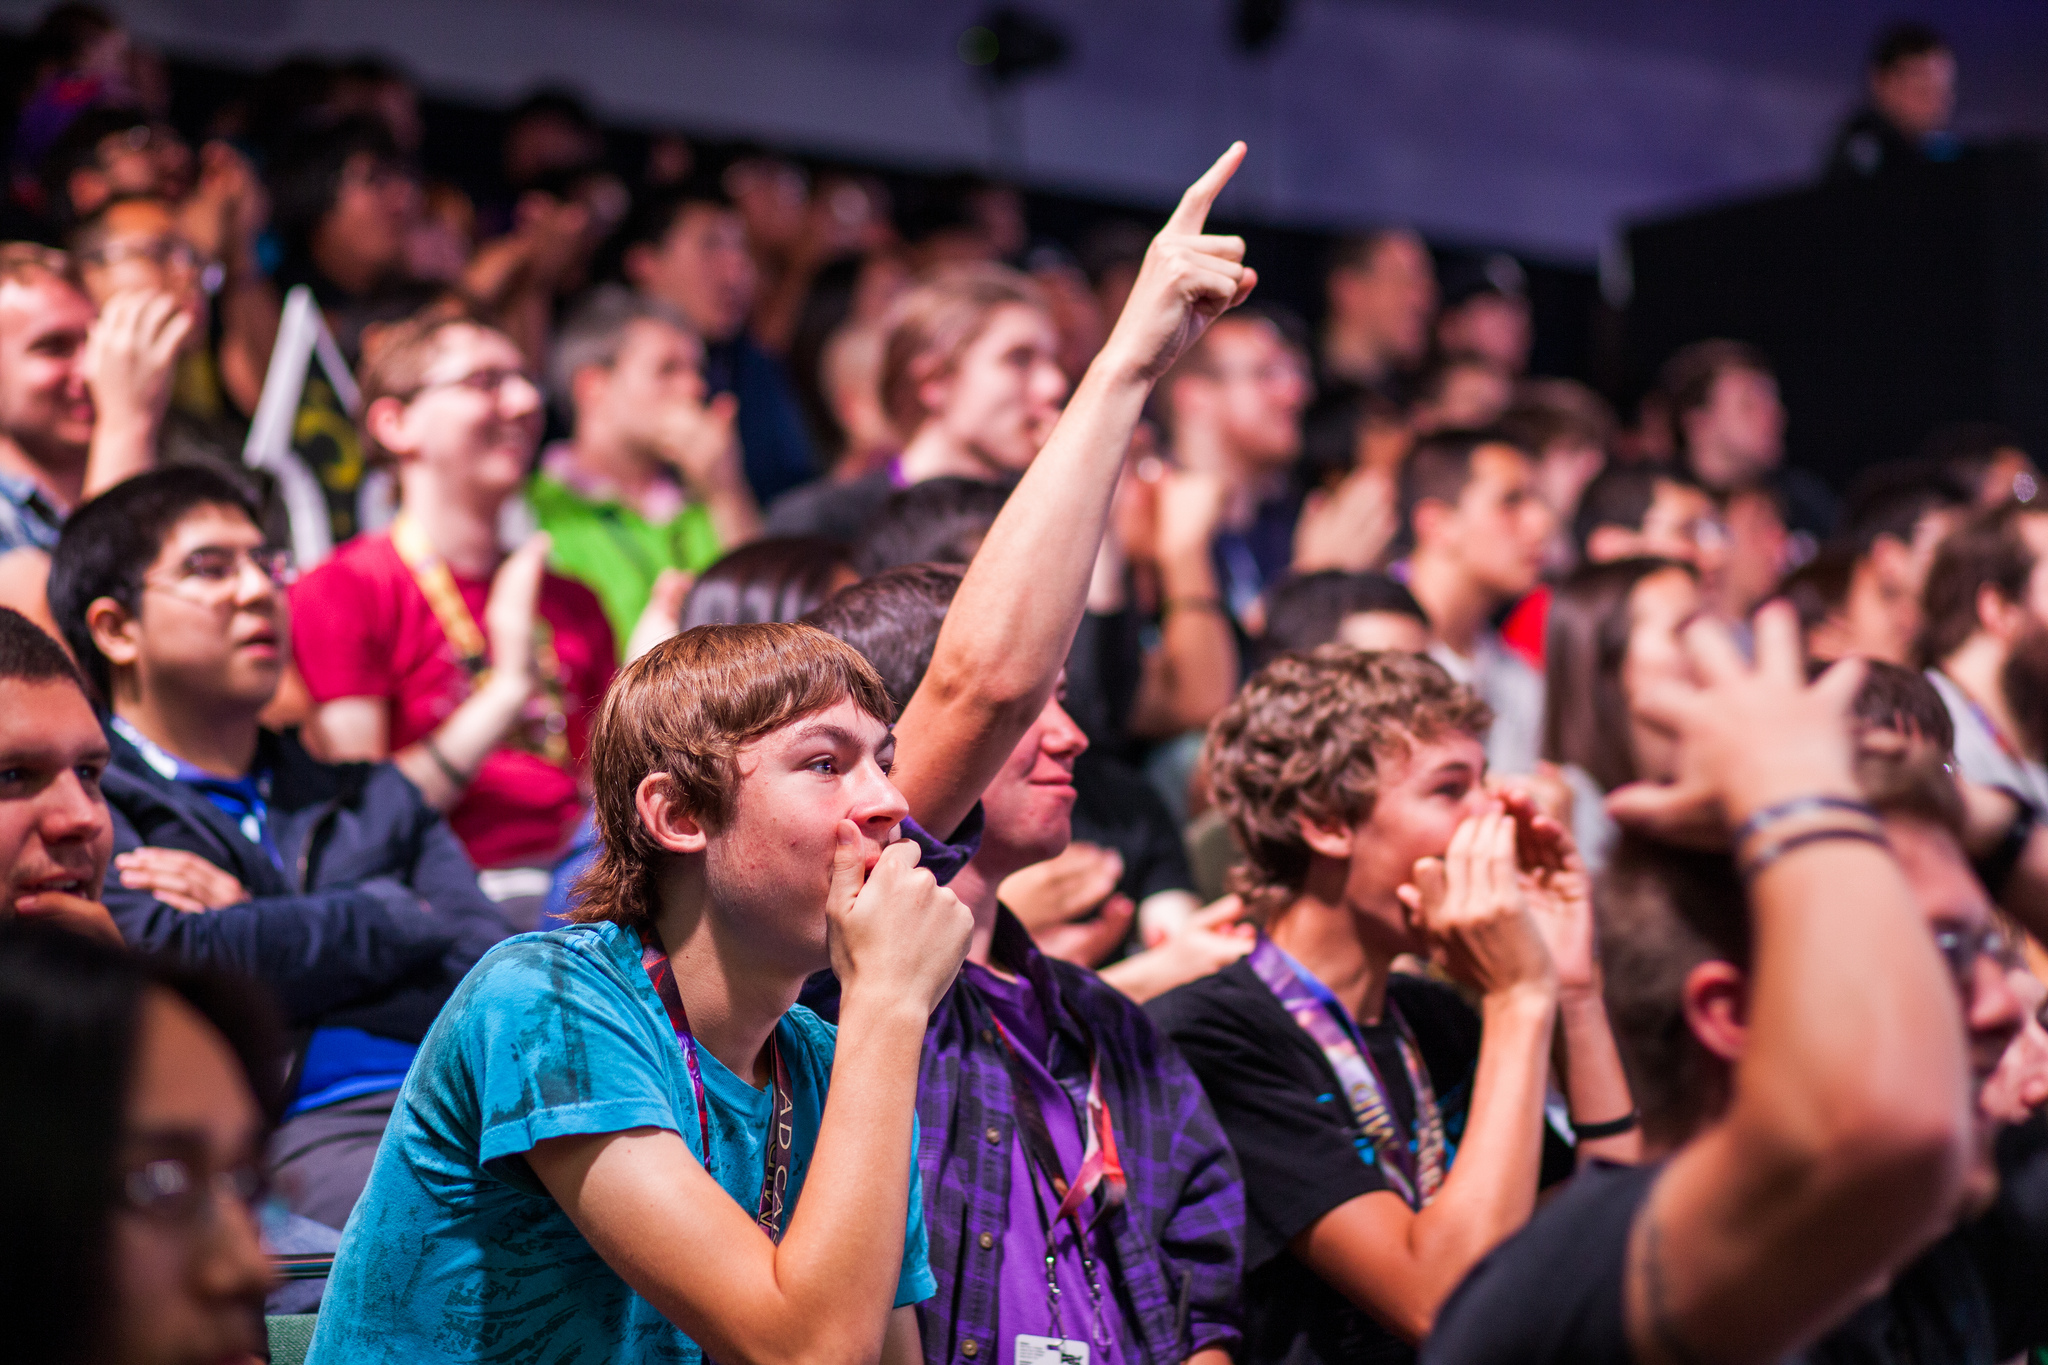 The crowd reacts to a play during Regional Championships at PAX Prime 2013.  source